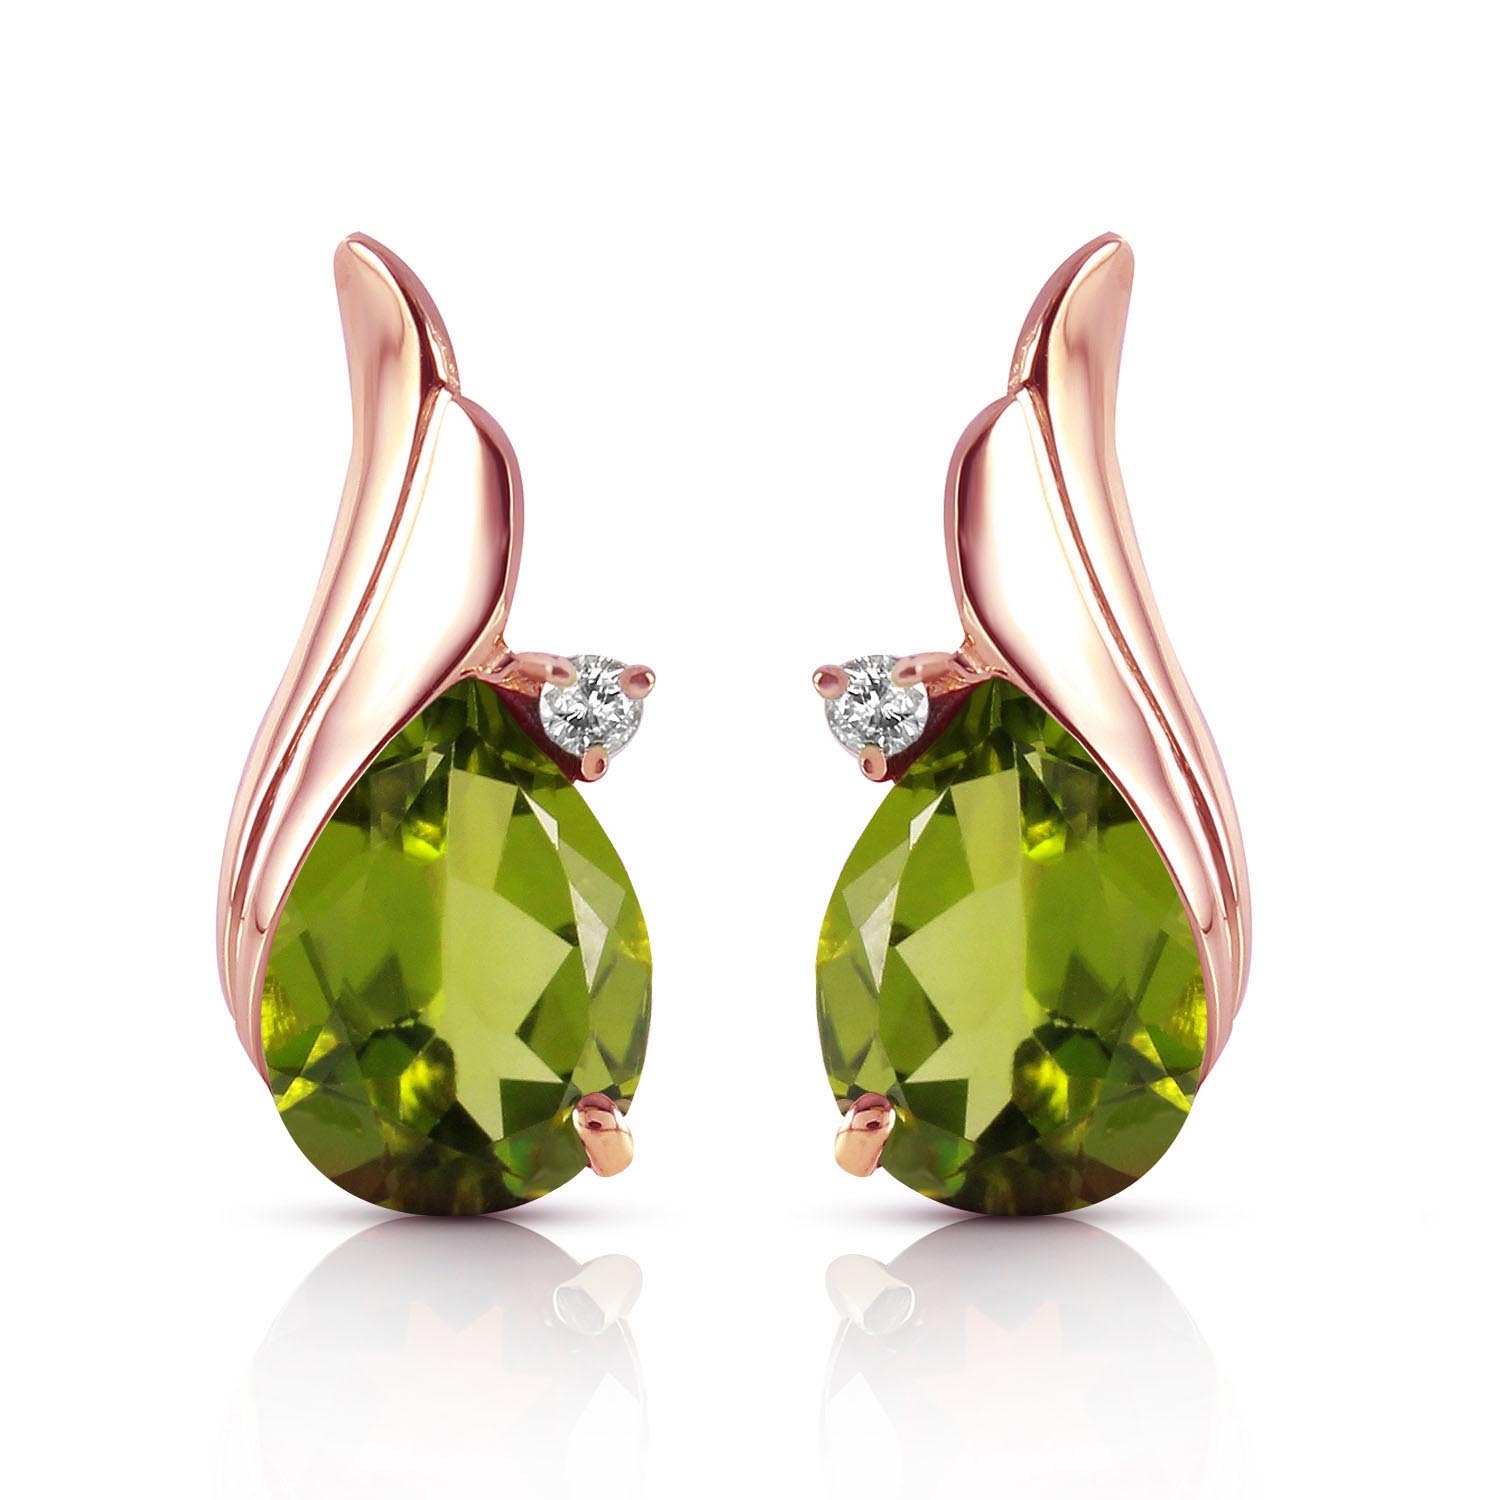 Peridot and Diamond Stud Earrings 4.2ctw in 9ct Rose Gold